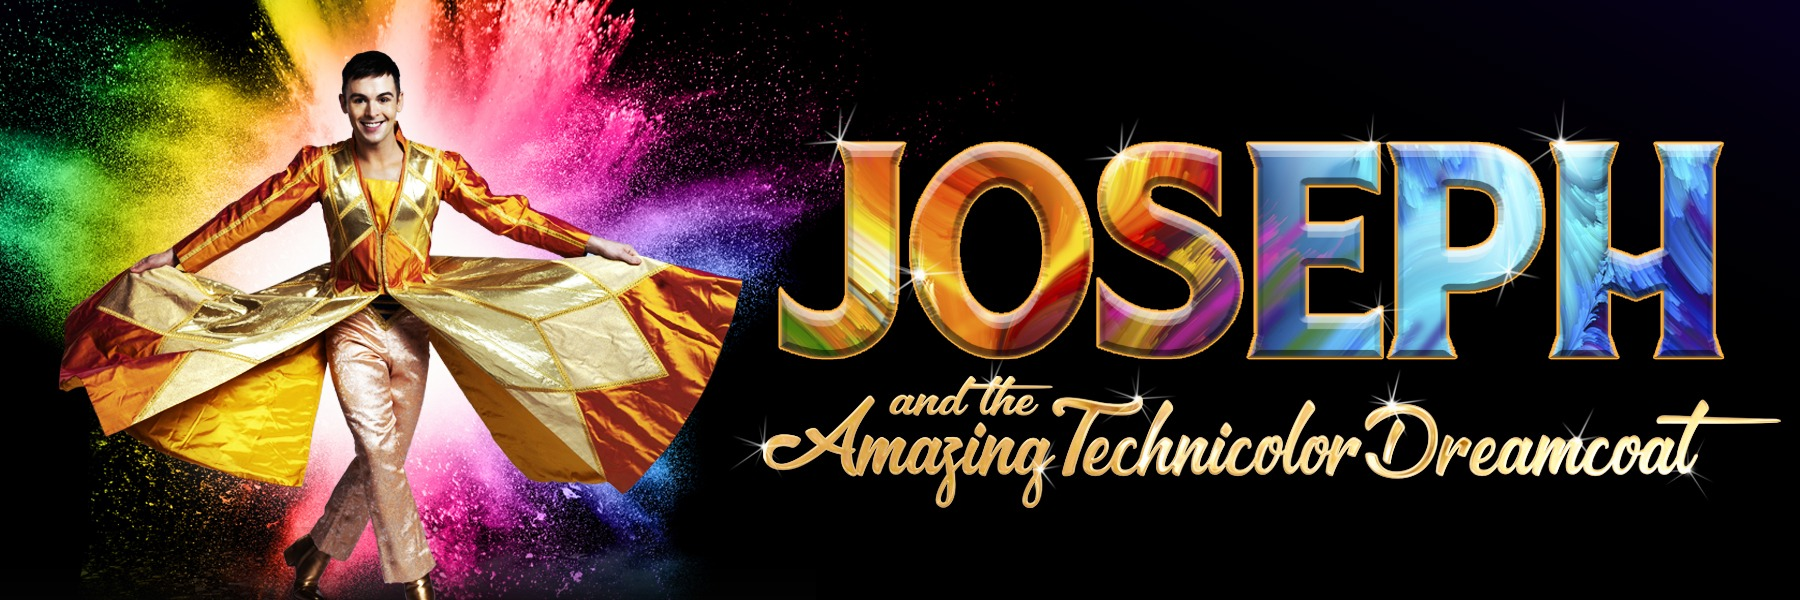 Joseph Und Joseph Joseph And The Amazing Technicolor Dreamcoat Bill Kenwright